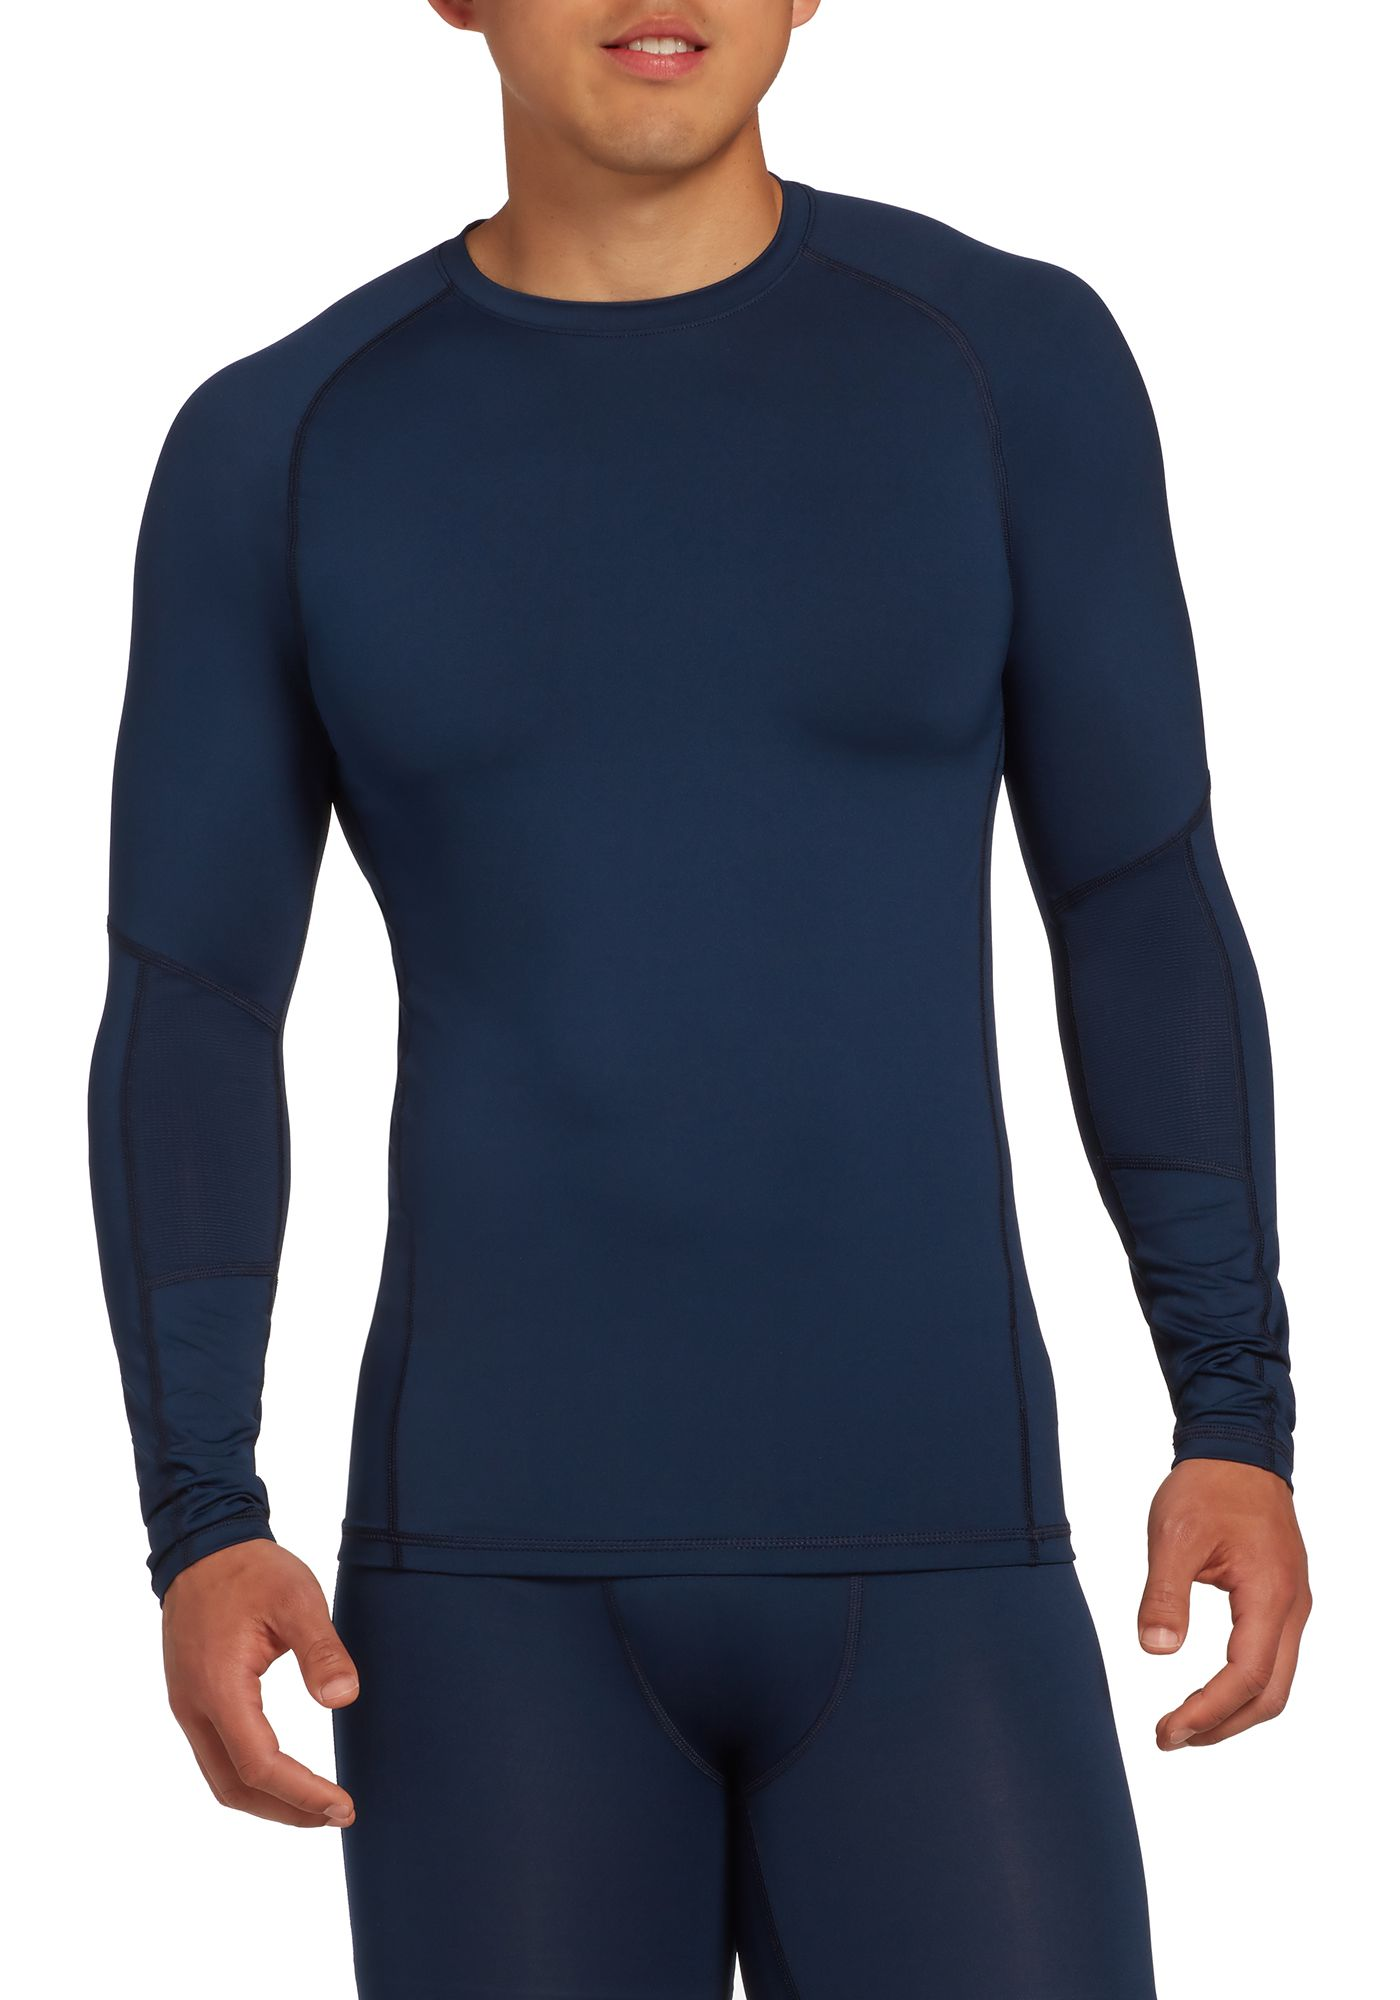 DSG Men's Compression Crew Long Sleeve Shirt